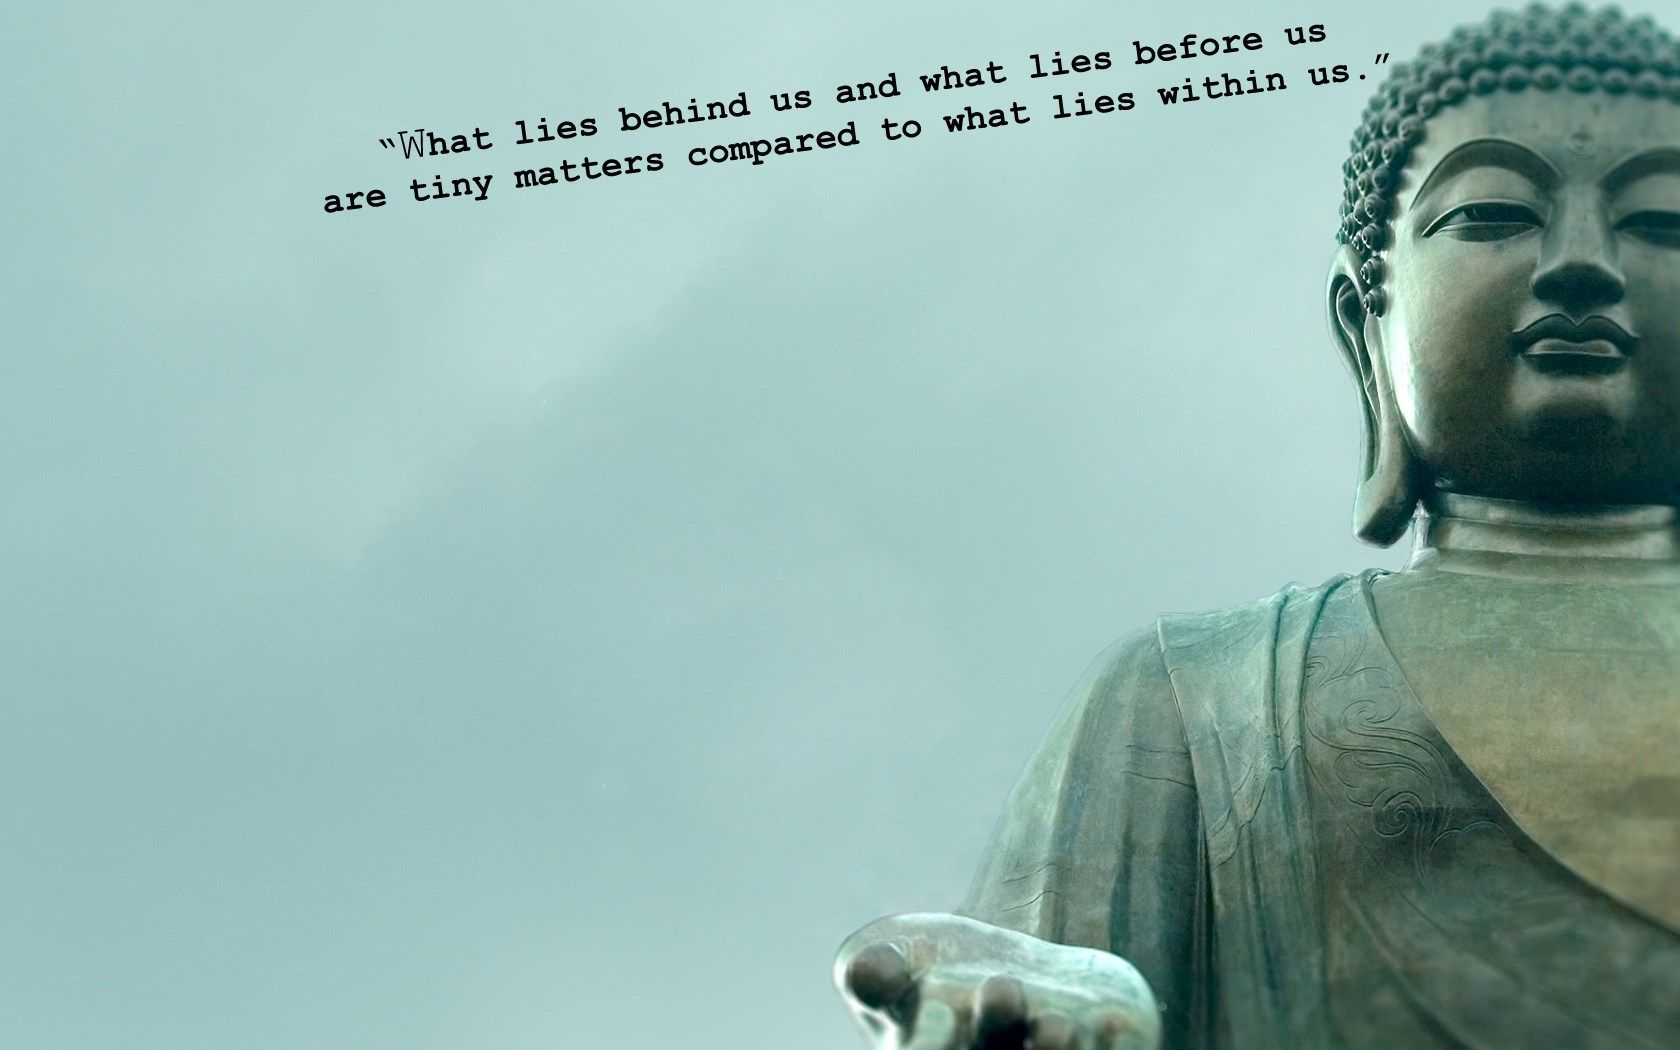 Free Download Pictures Of Buddhism Graden Little 2017 03 26 Osho Best Buddha Quotes Buddha Quotes